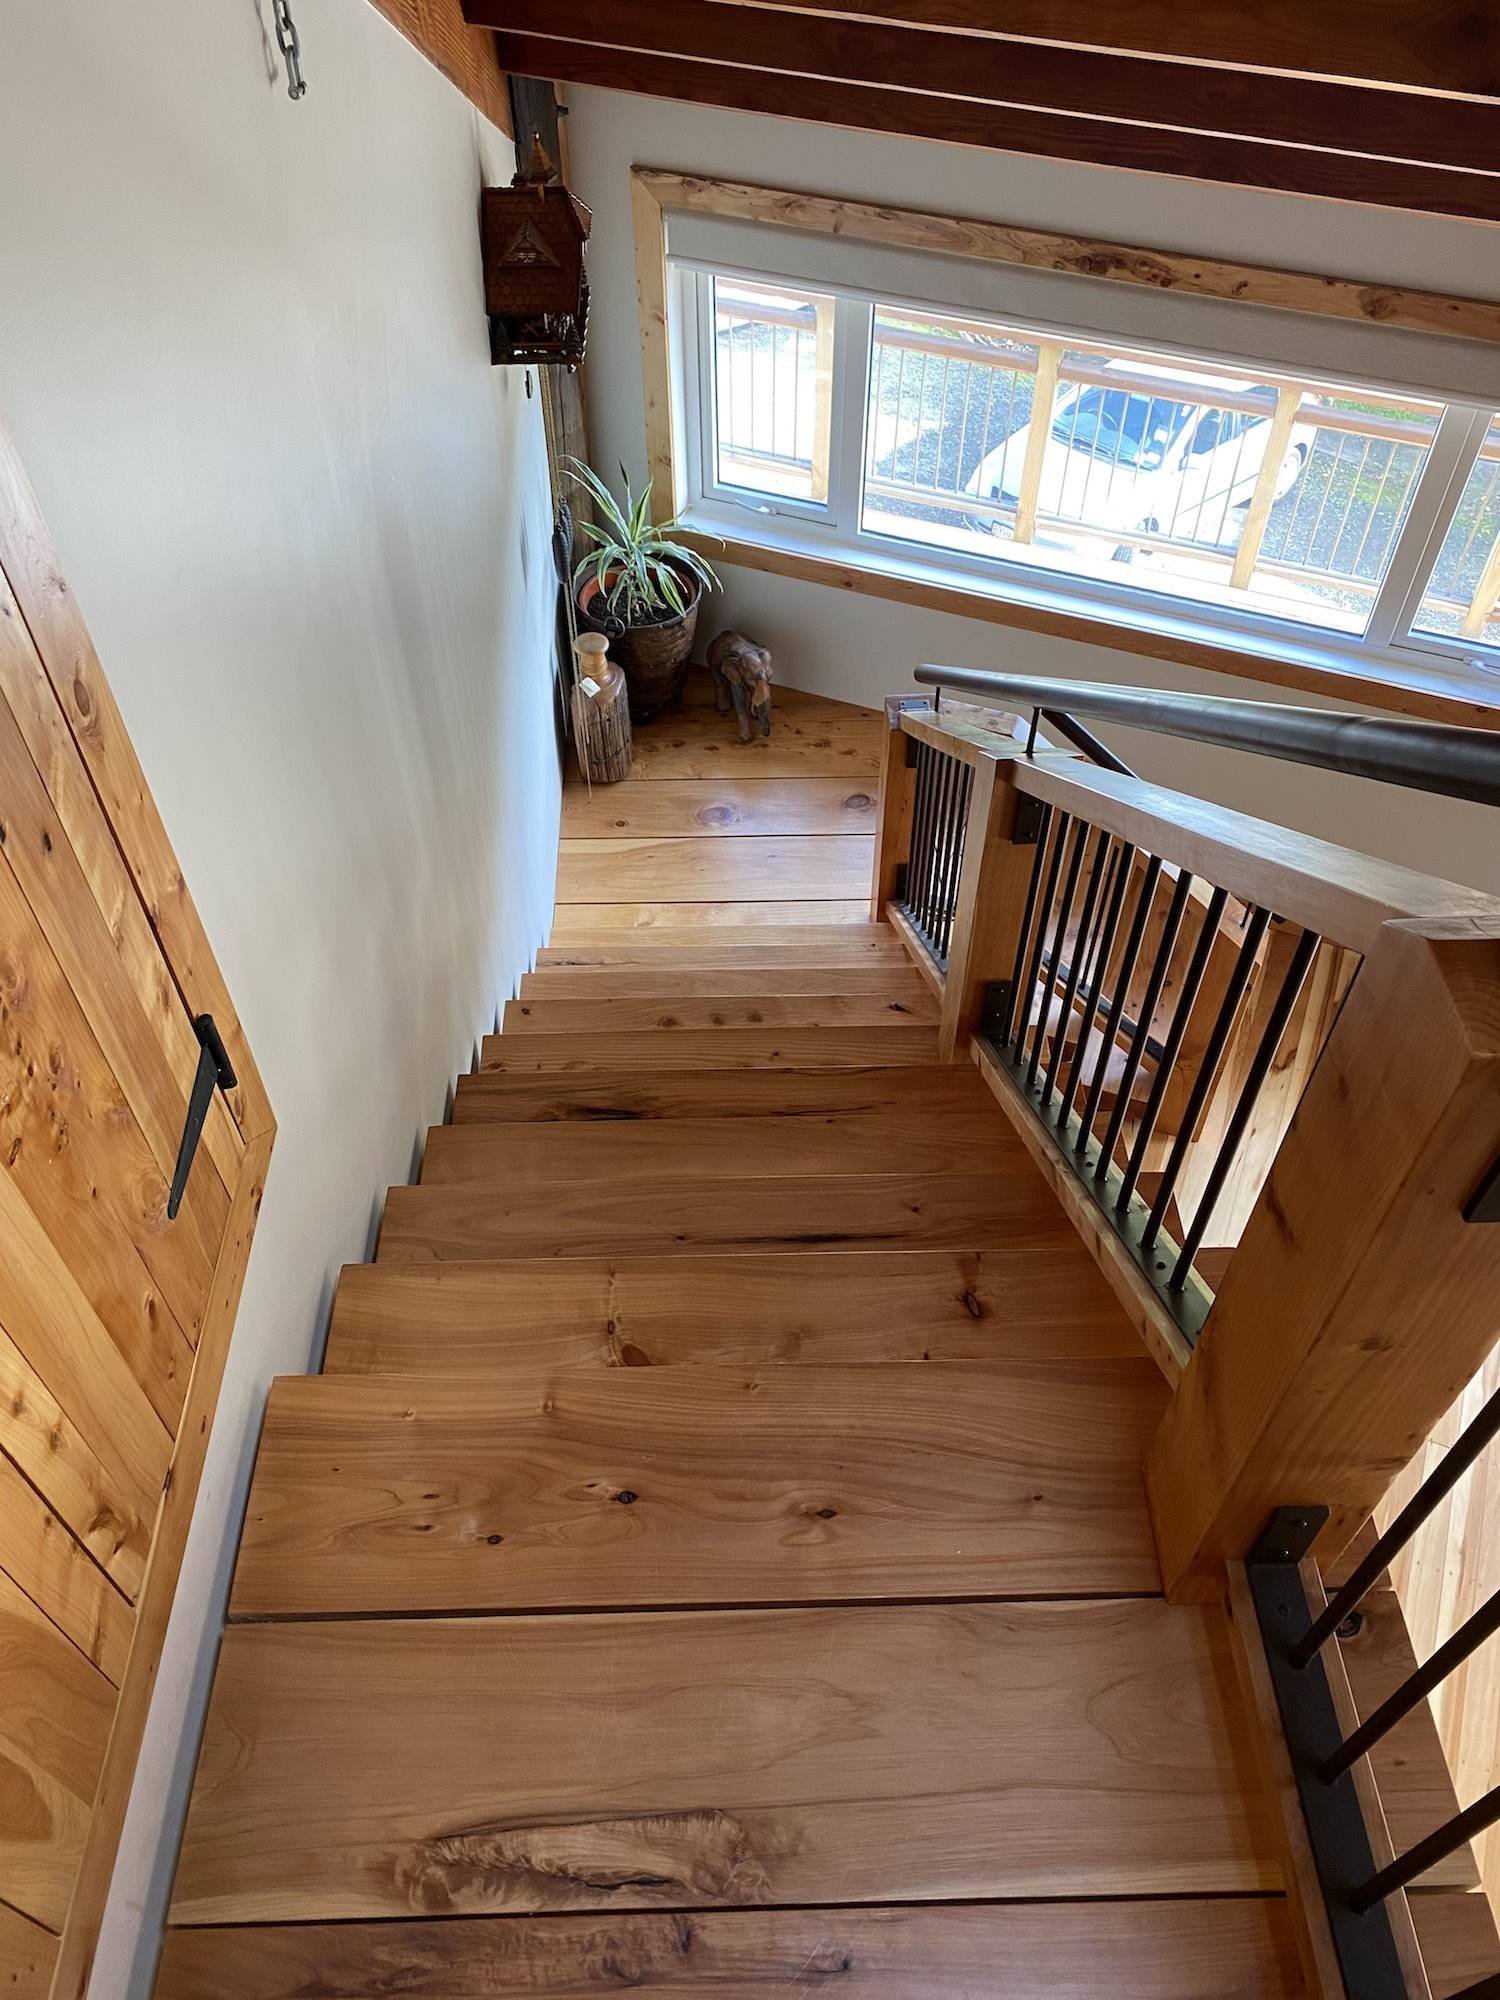 Wooden stairs used in this rustic stair design in Auckland